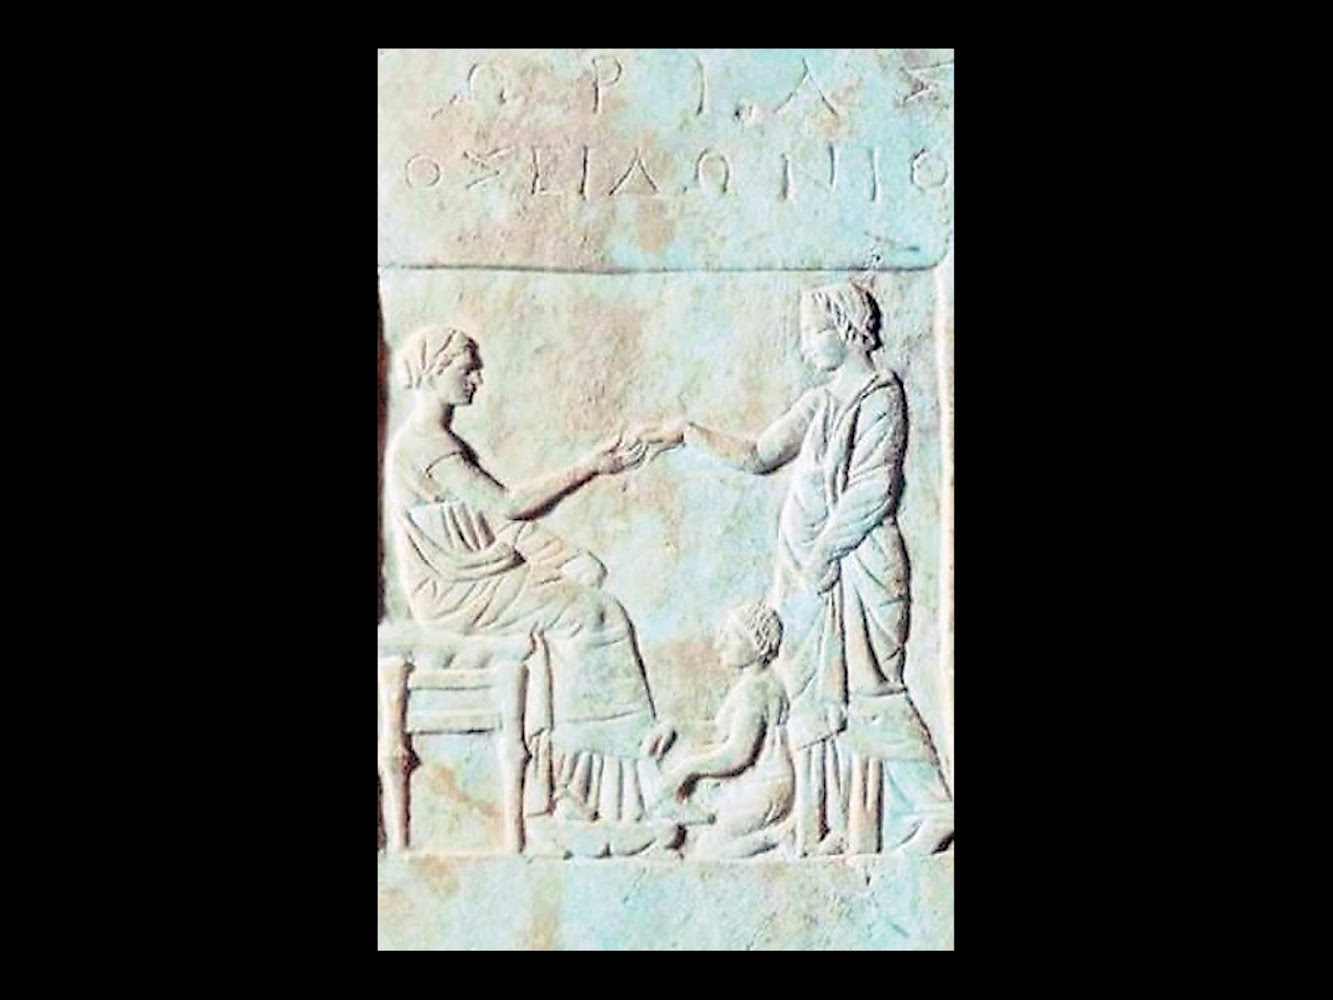 Southern Europe: Contested 'Dorias' stele sold by Christies